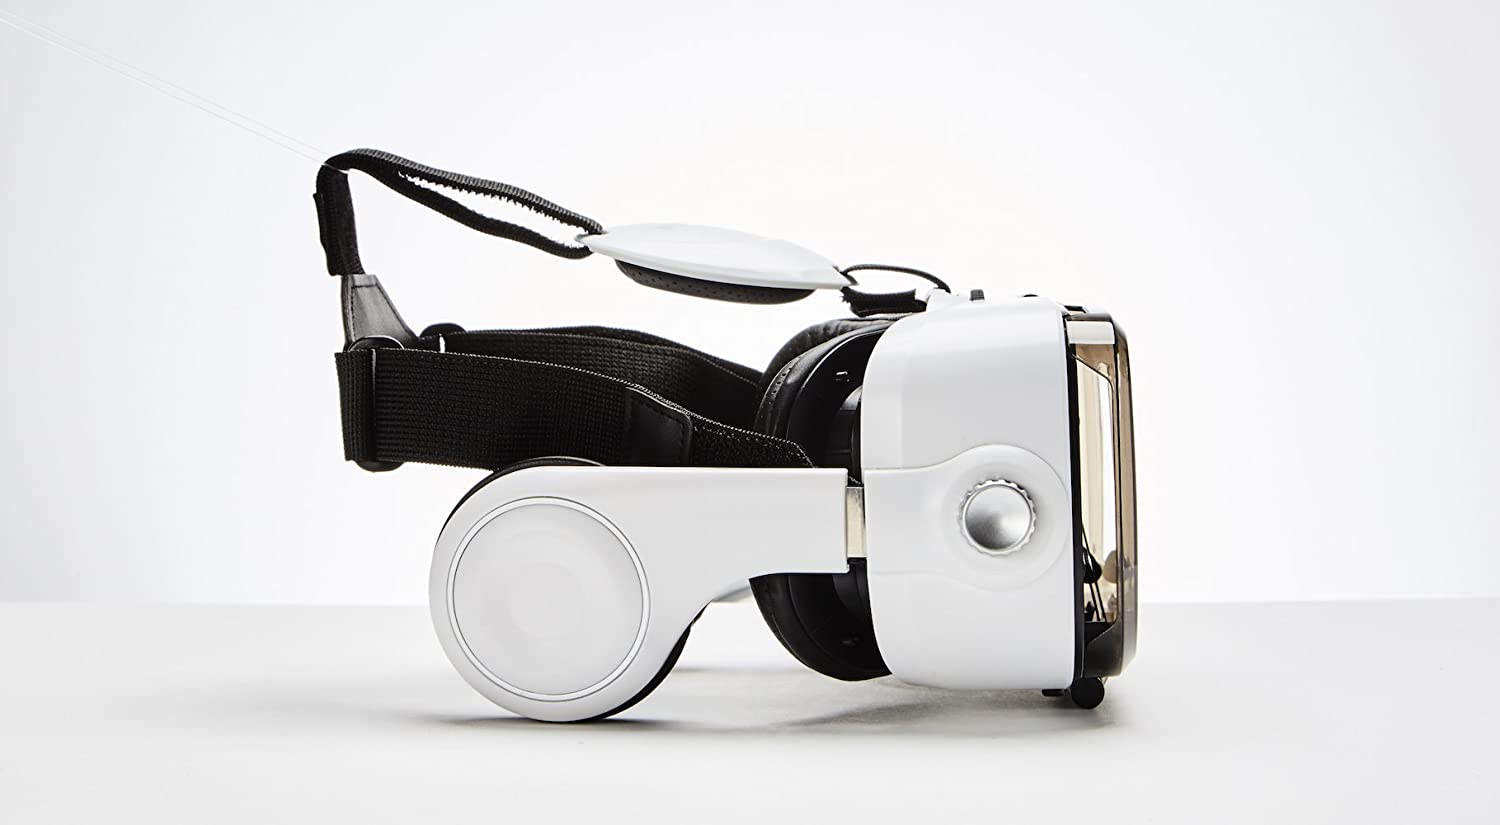 VR Headset Revolution Rare 120 FOV (Frame of View) Best 3D Virtual Reality Glasses/Goggles for iPhone & Android Phones. Comes with Built-in Headphones, Volume & Control Dial, Adjustable Lenses!